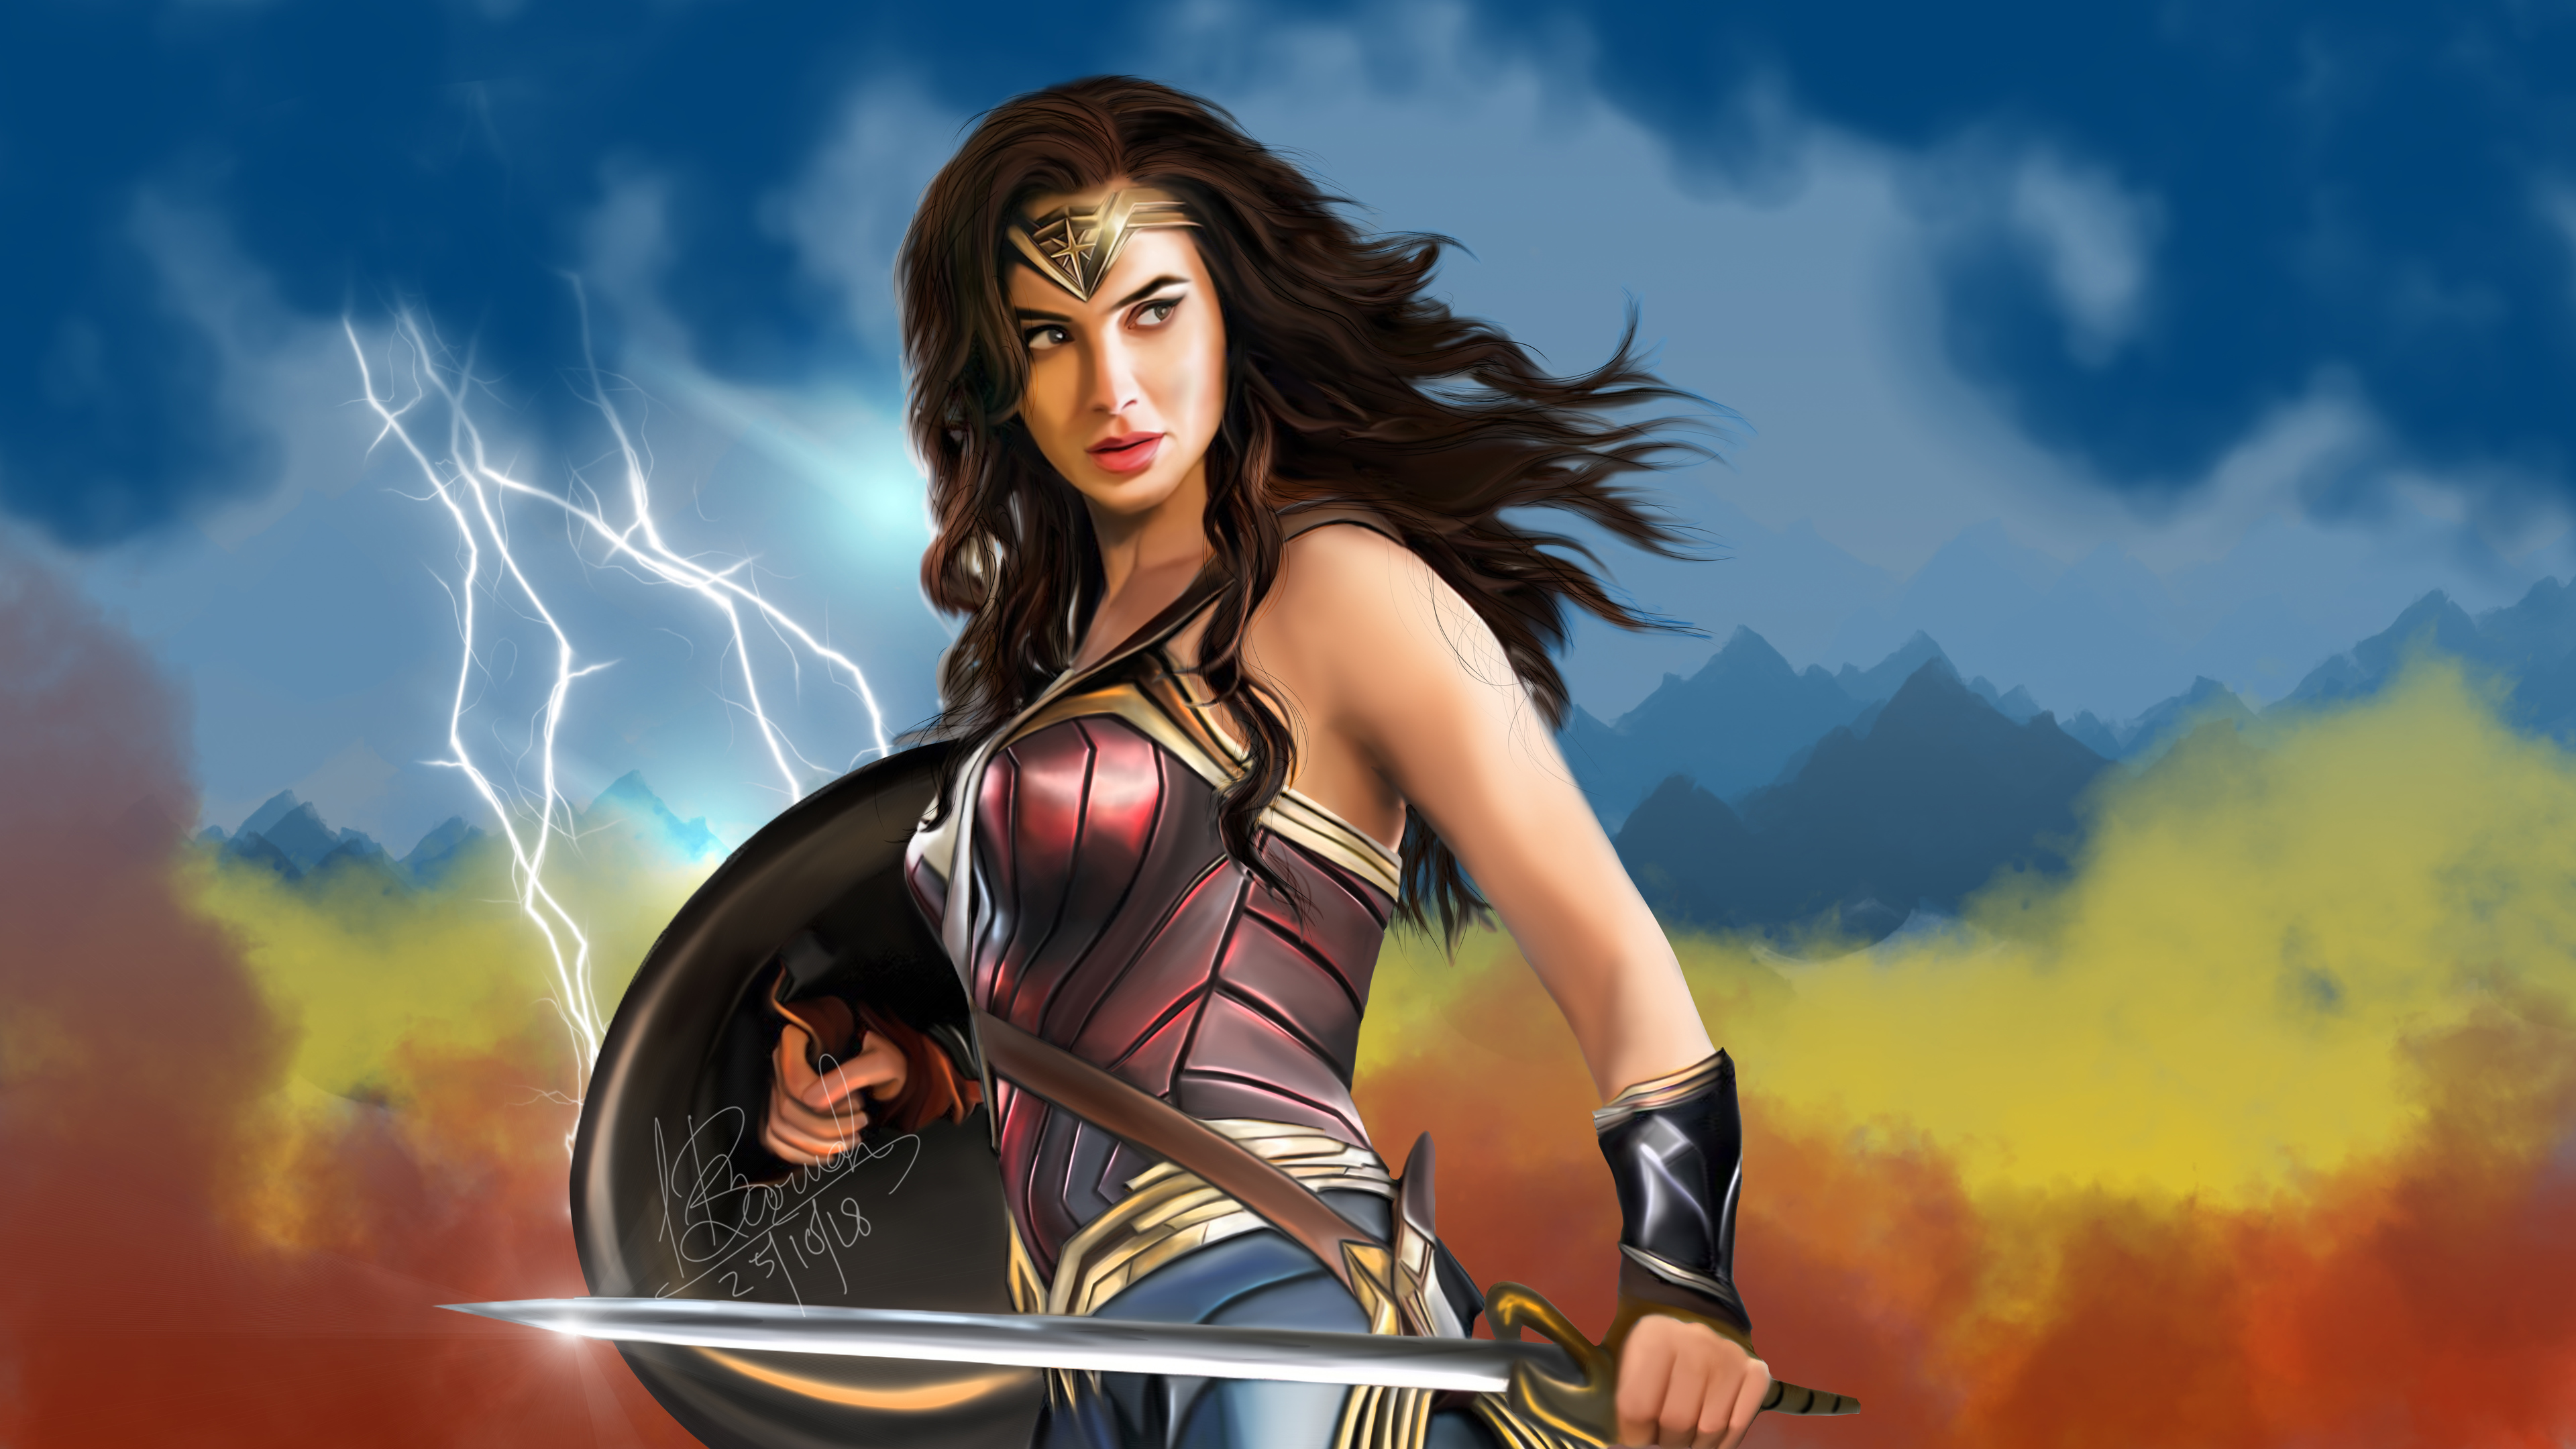 wonder woman fan art 4k 1543618776 - Wonder Woman Fan Art 4k - wonder woman wallpapers, superheroes wallpapers, hd-wallpapers, digital art wallpapers, deviantart wallpapers, artwork wallpapers, artist wallpapers, 4k-wallpapers